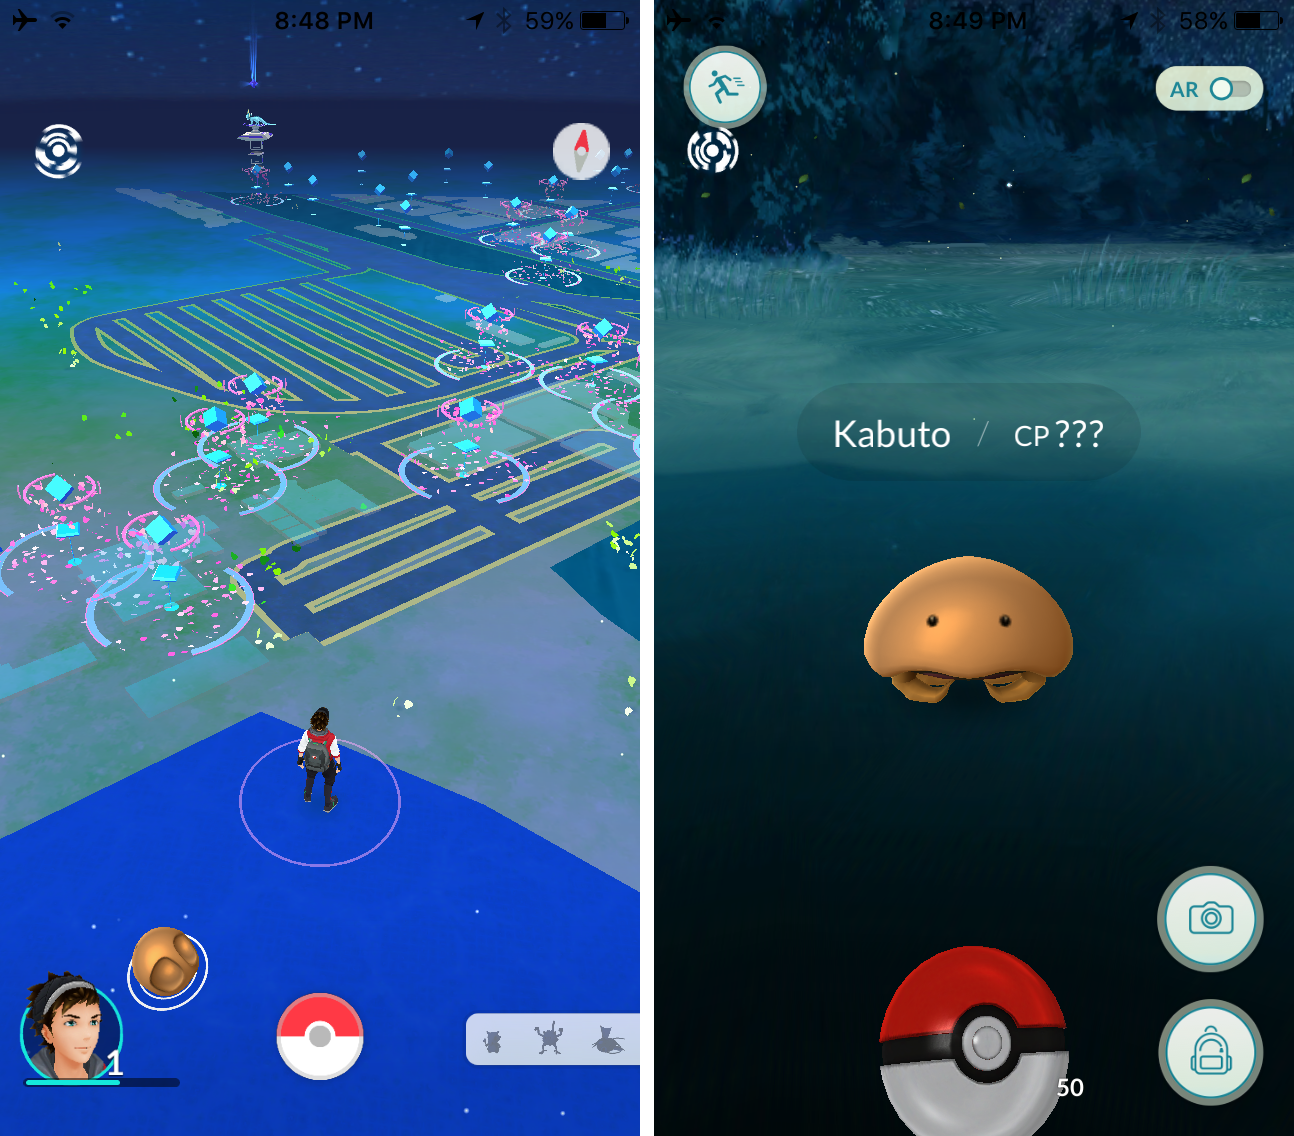 How to spoof your location in Pokémon GO [jailbreak]